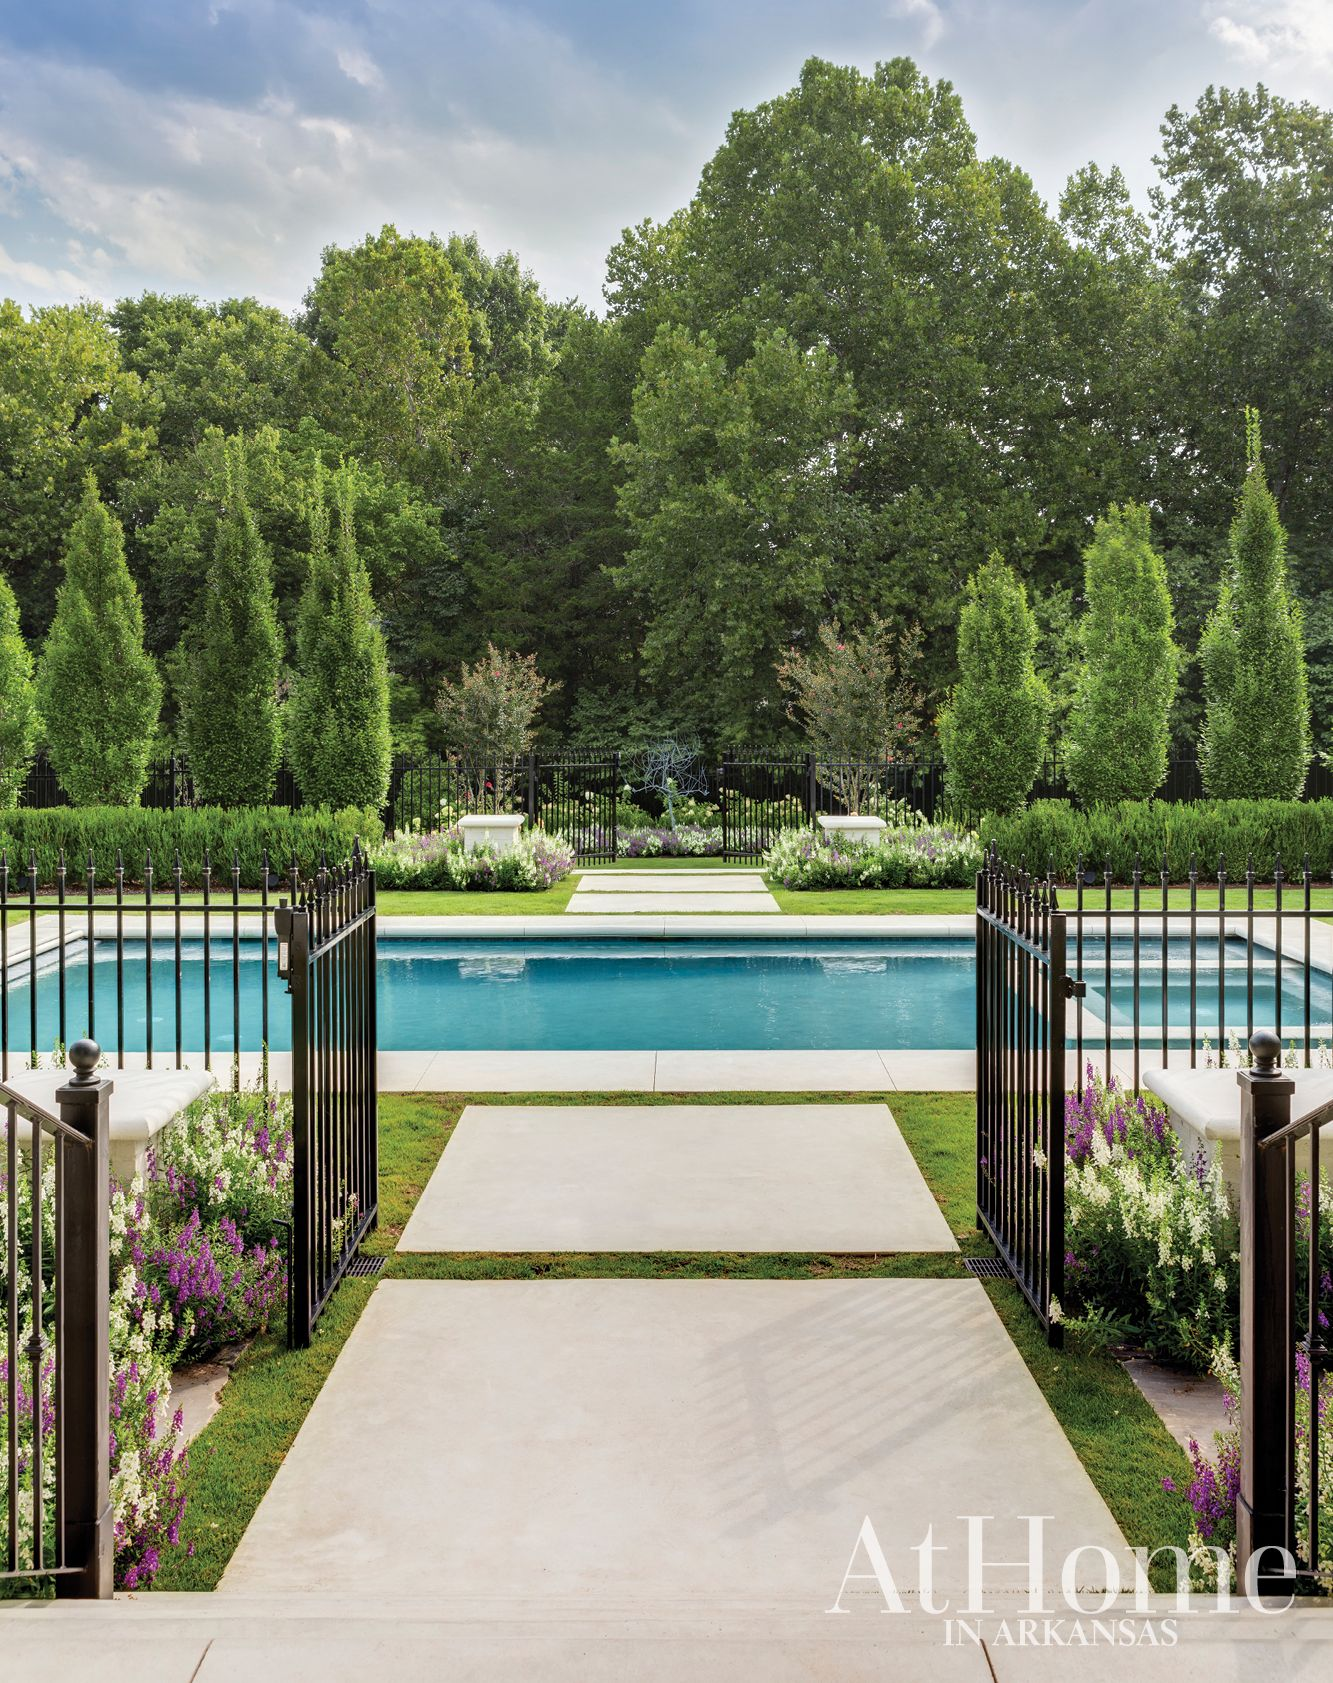 An Elegant Escape At Home In Arkansas Pool Landscaping Pool Fencing Landscaping Backyard Pool Landscaping